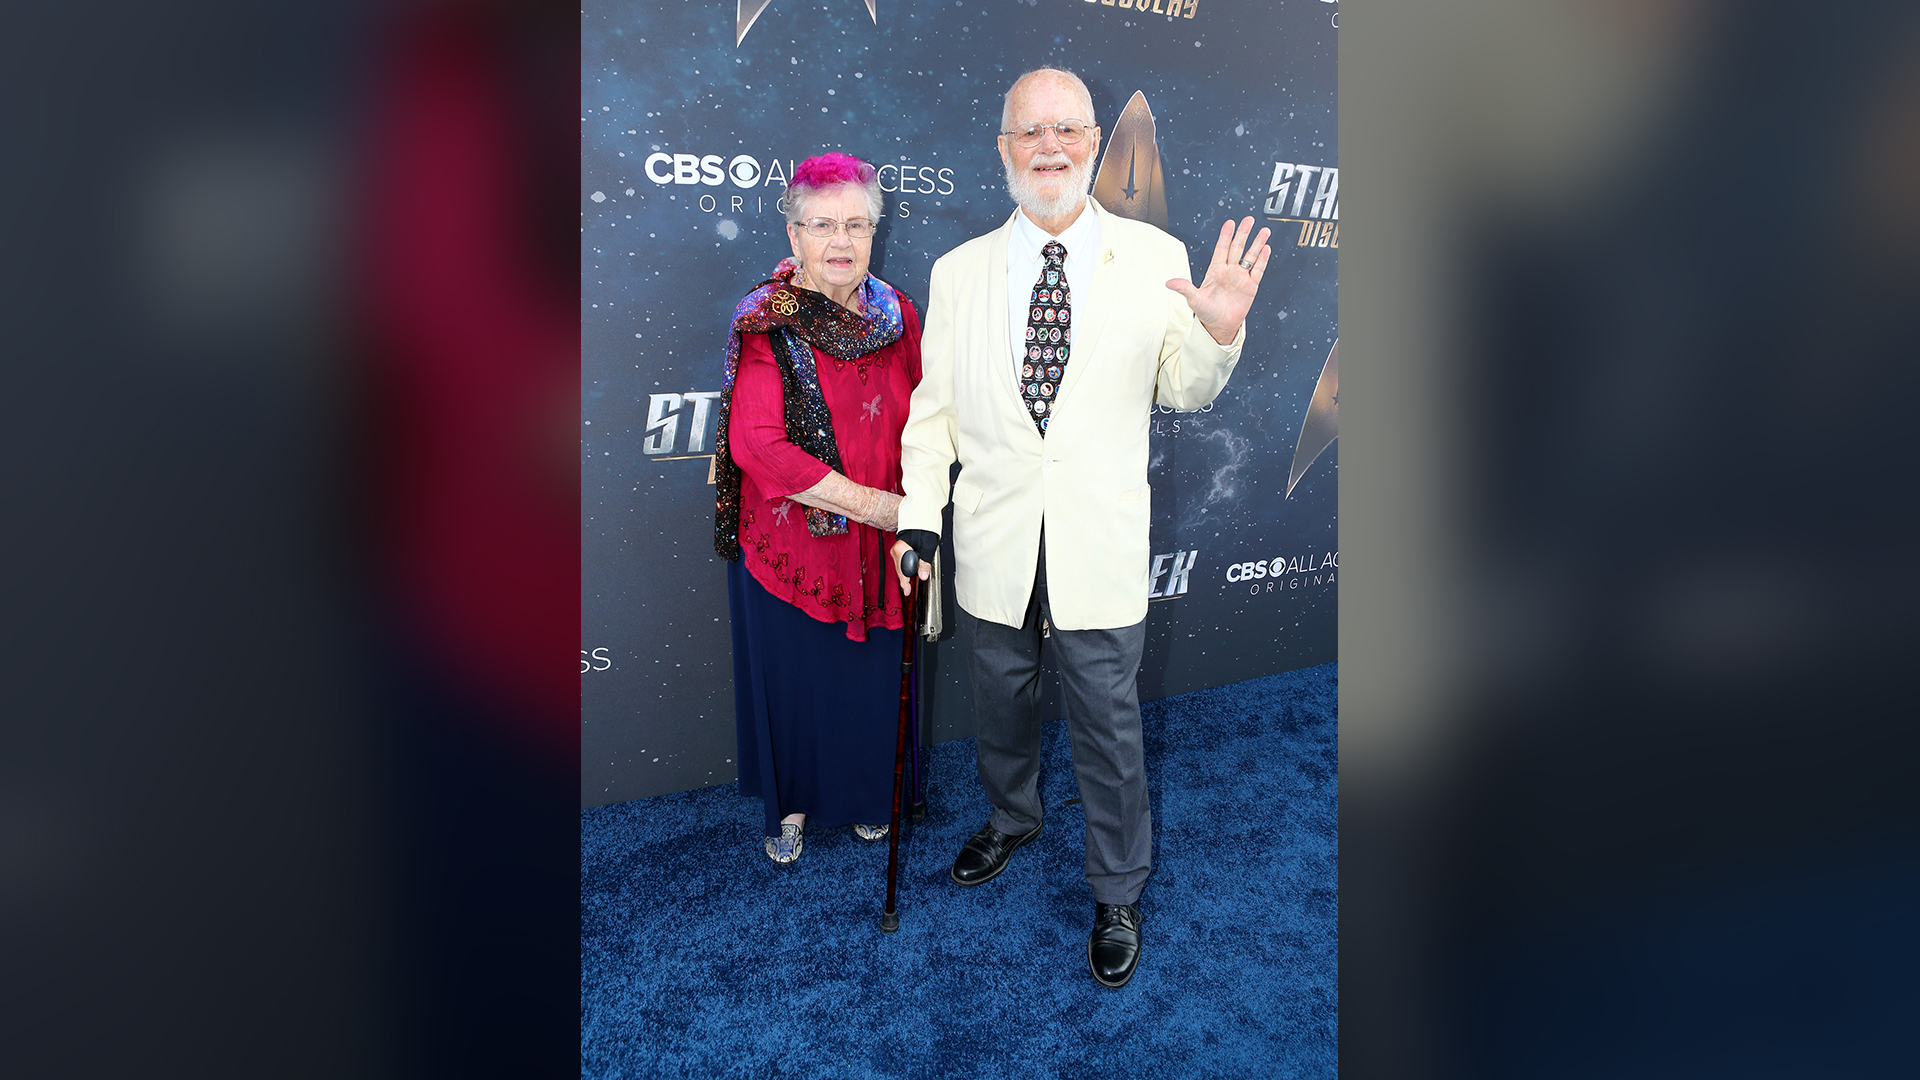 Bjo and John Trimble, the fans who helped save the original Star Trek